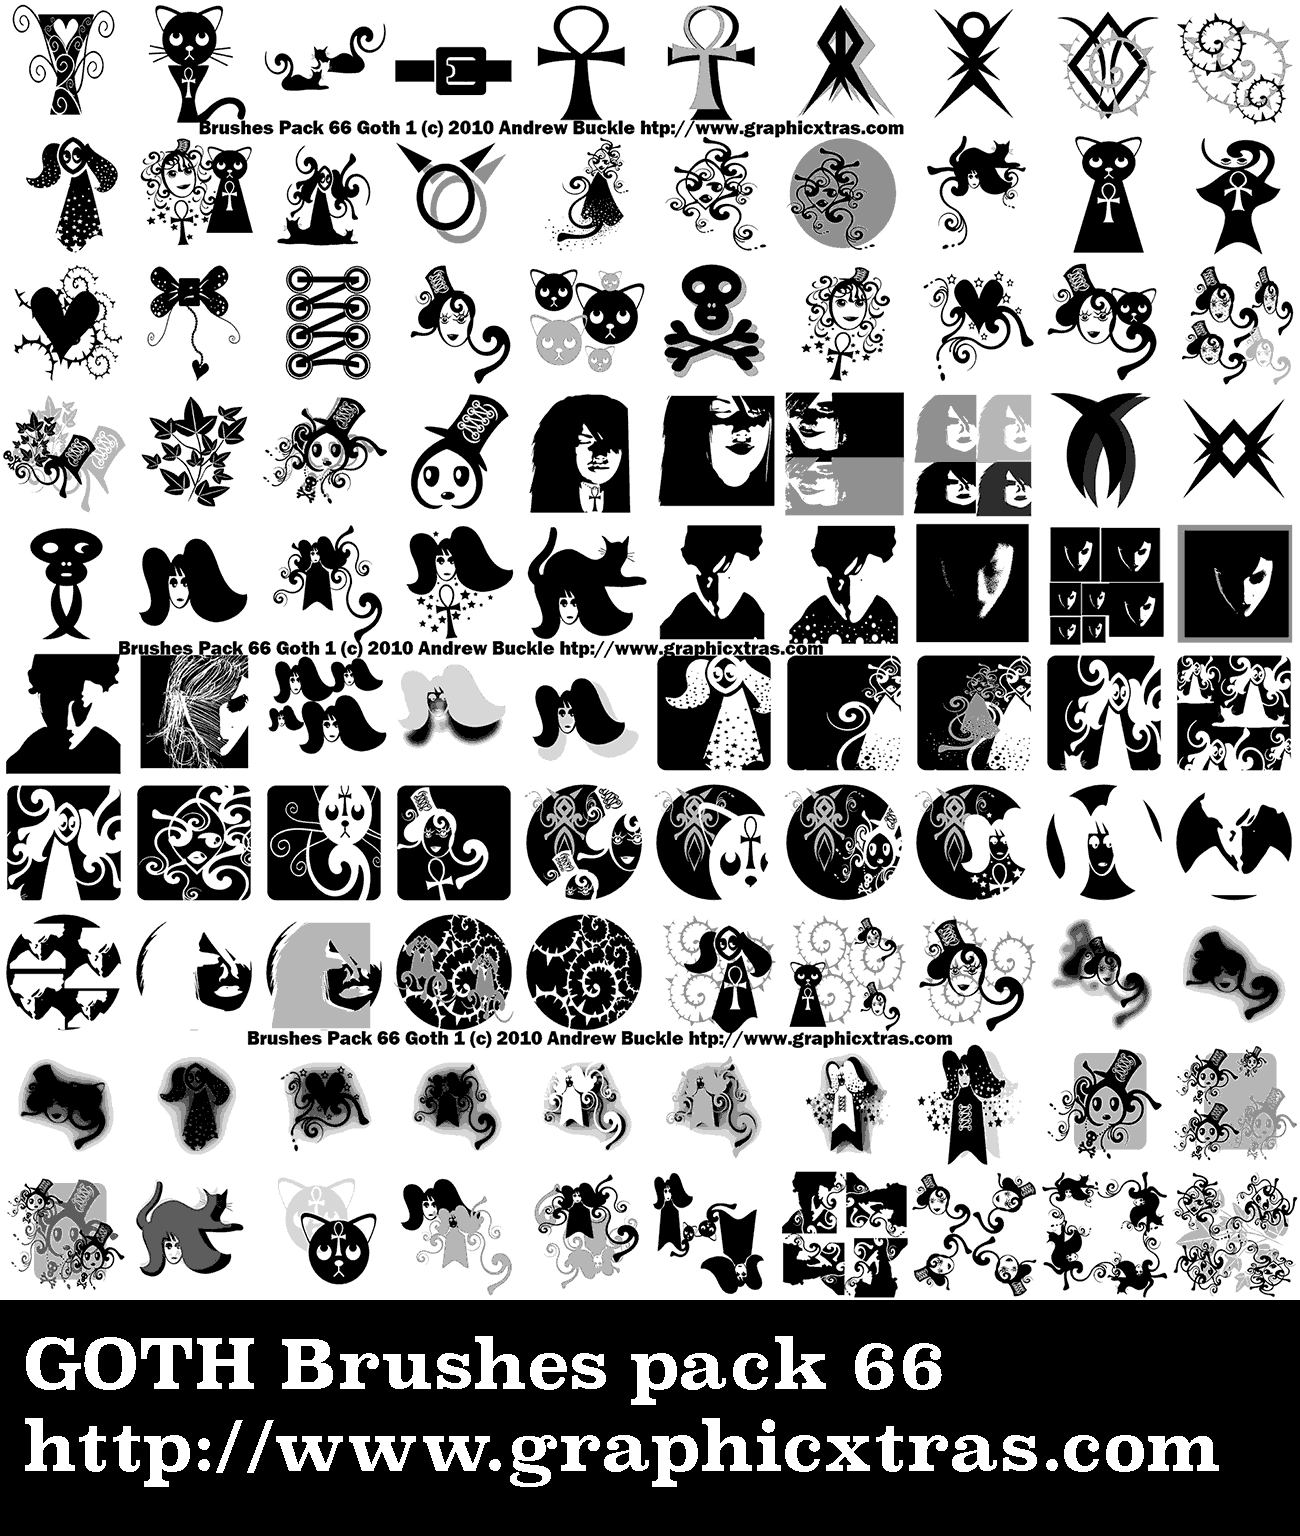 Free Photoshop Brushes from CC Market